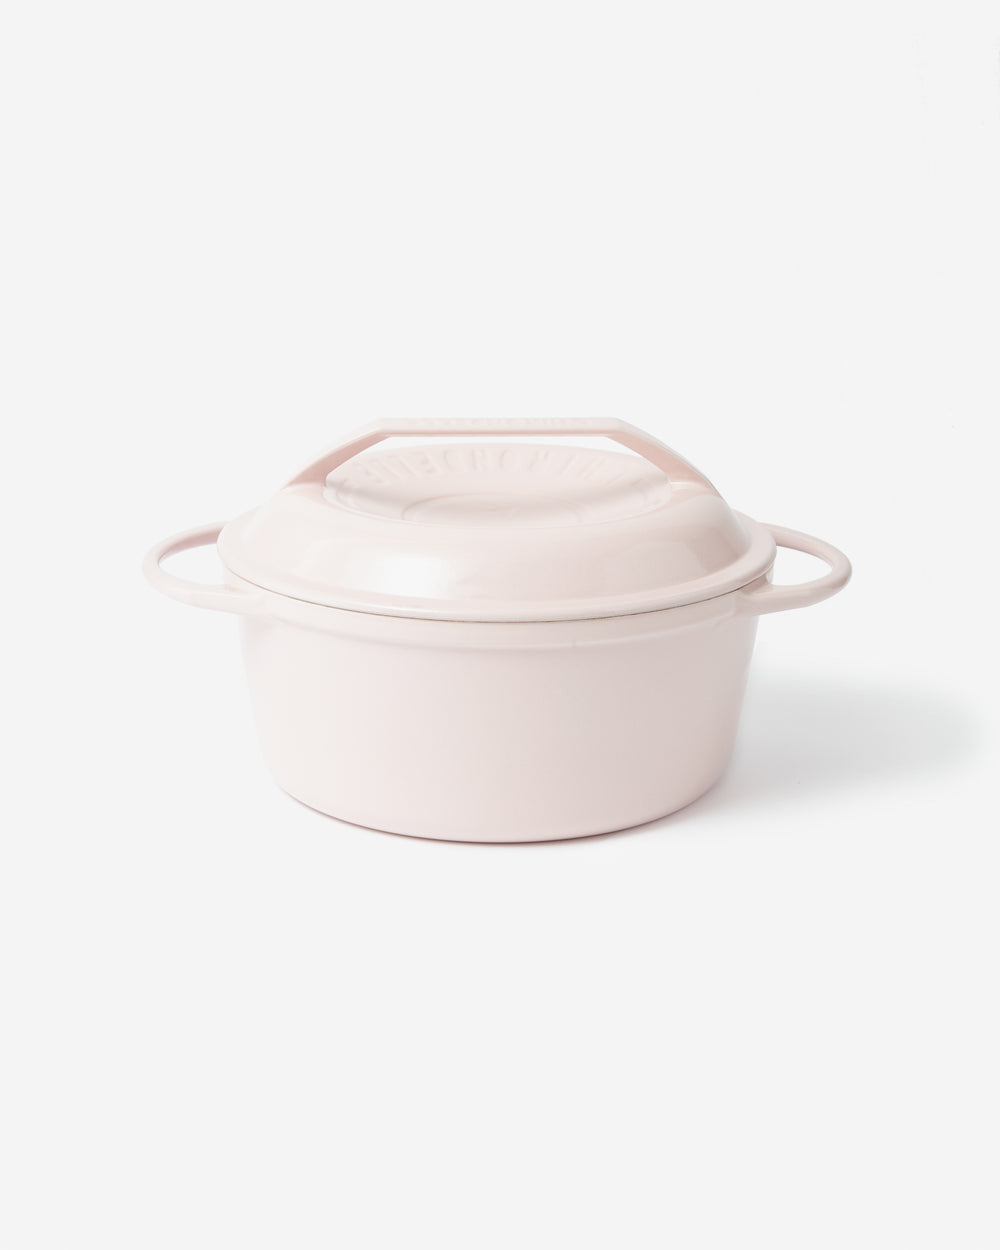 Stainless Steel Casserole Pot – Peach Enamel